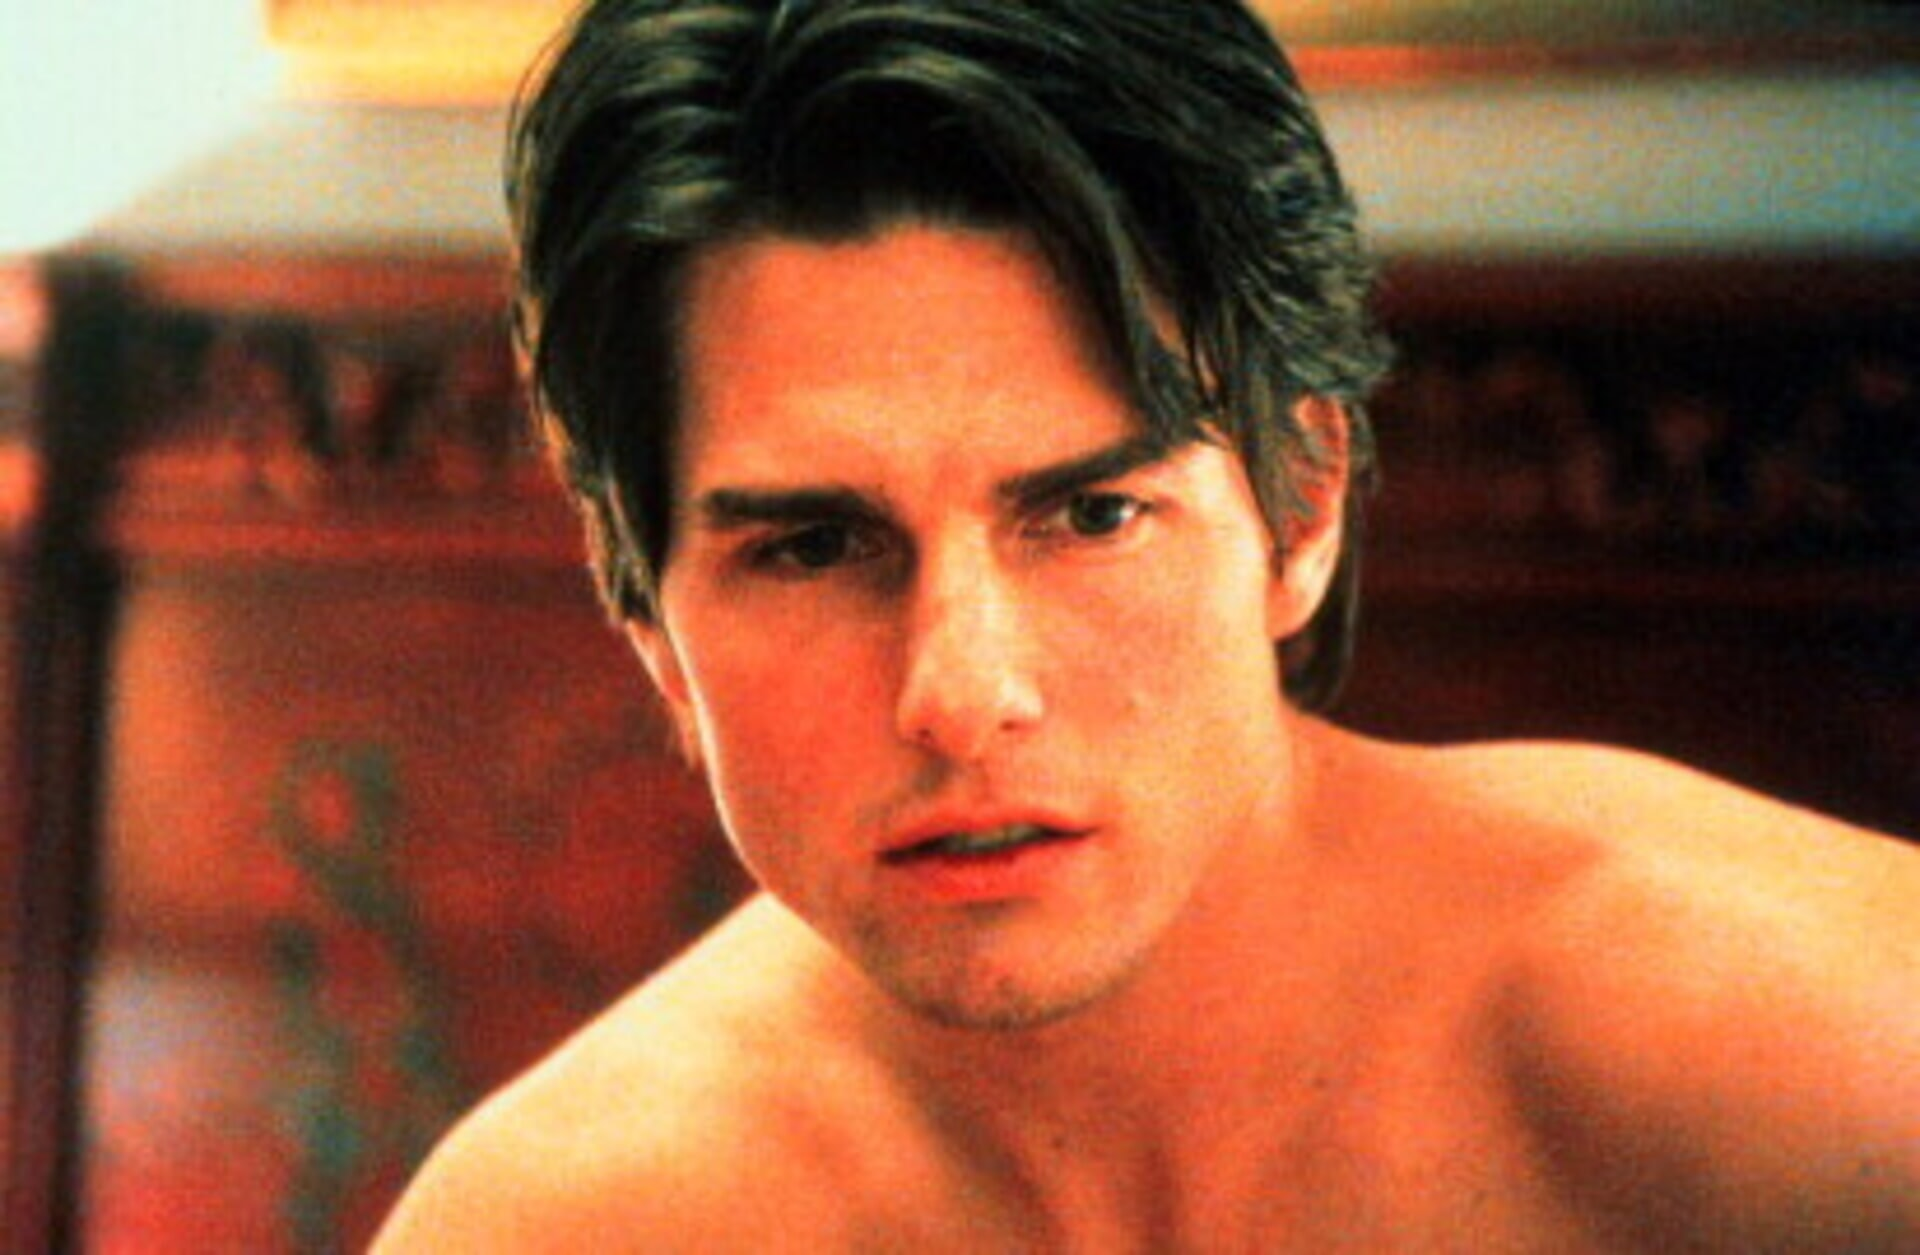 Eyes Wide Shut - Image 13